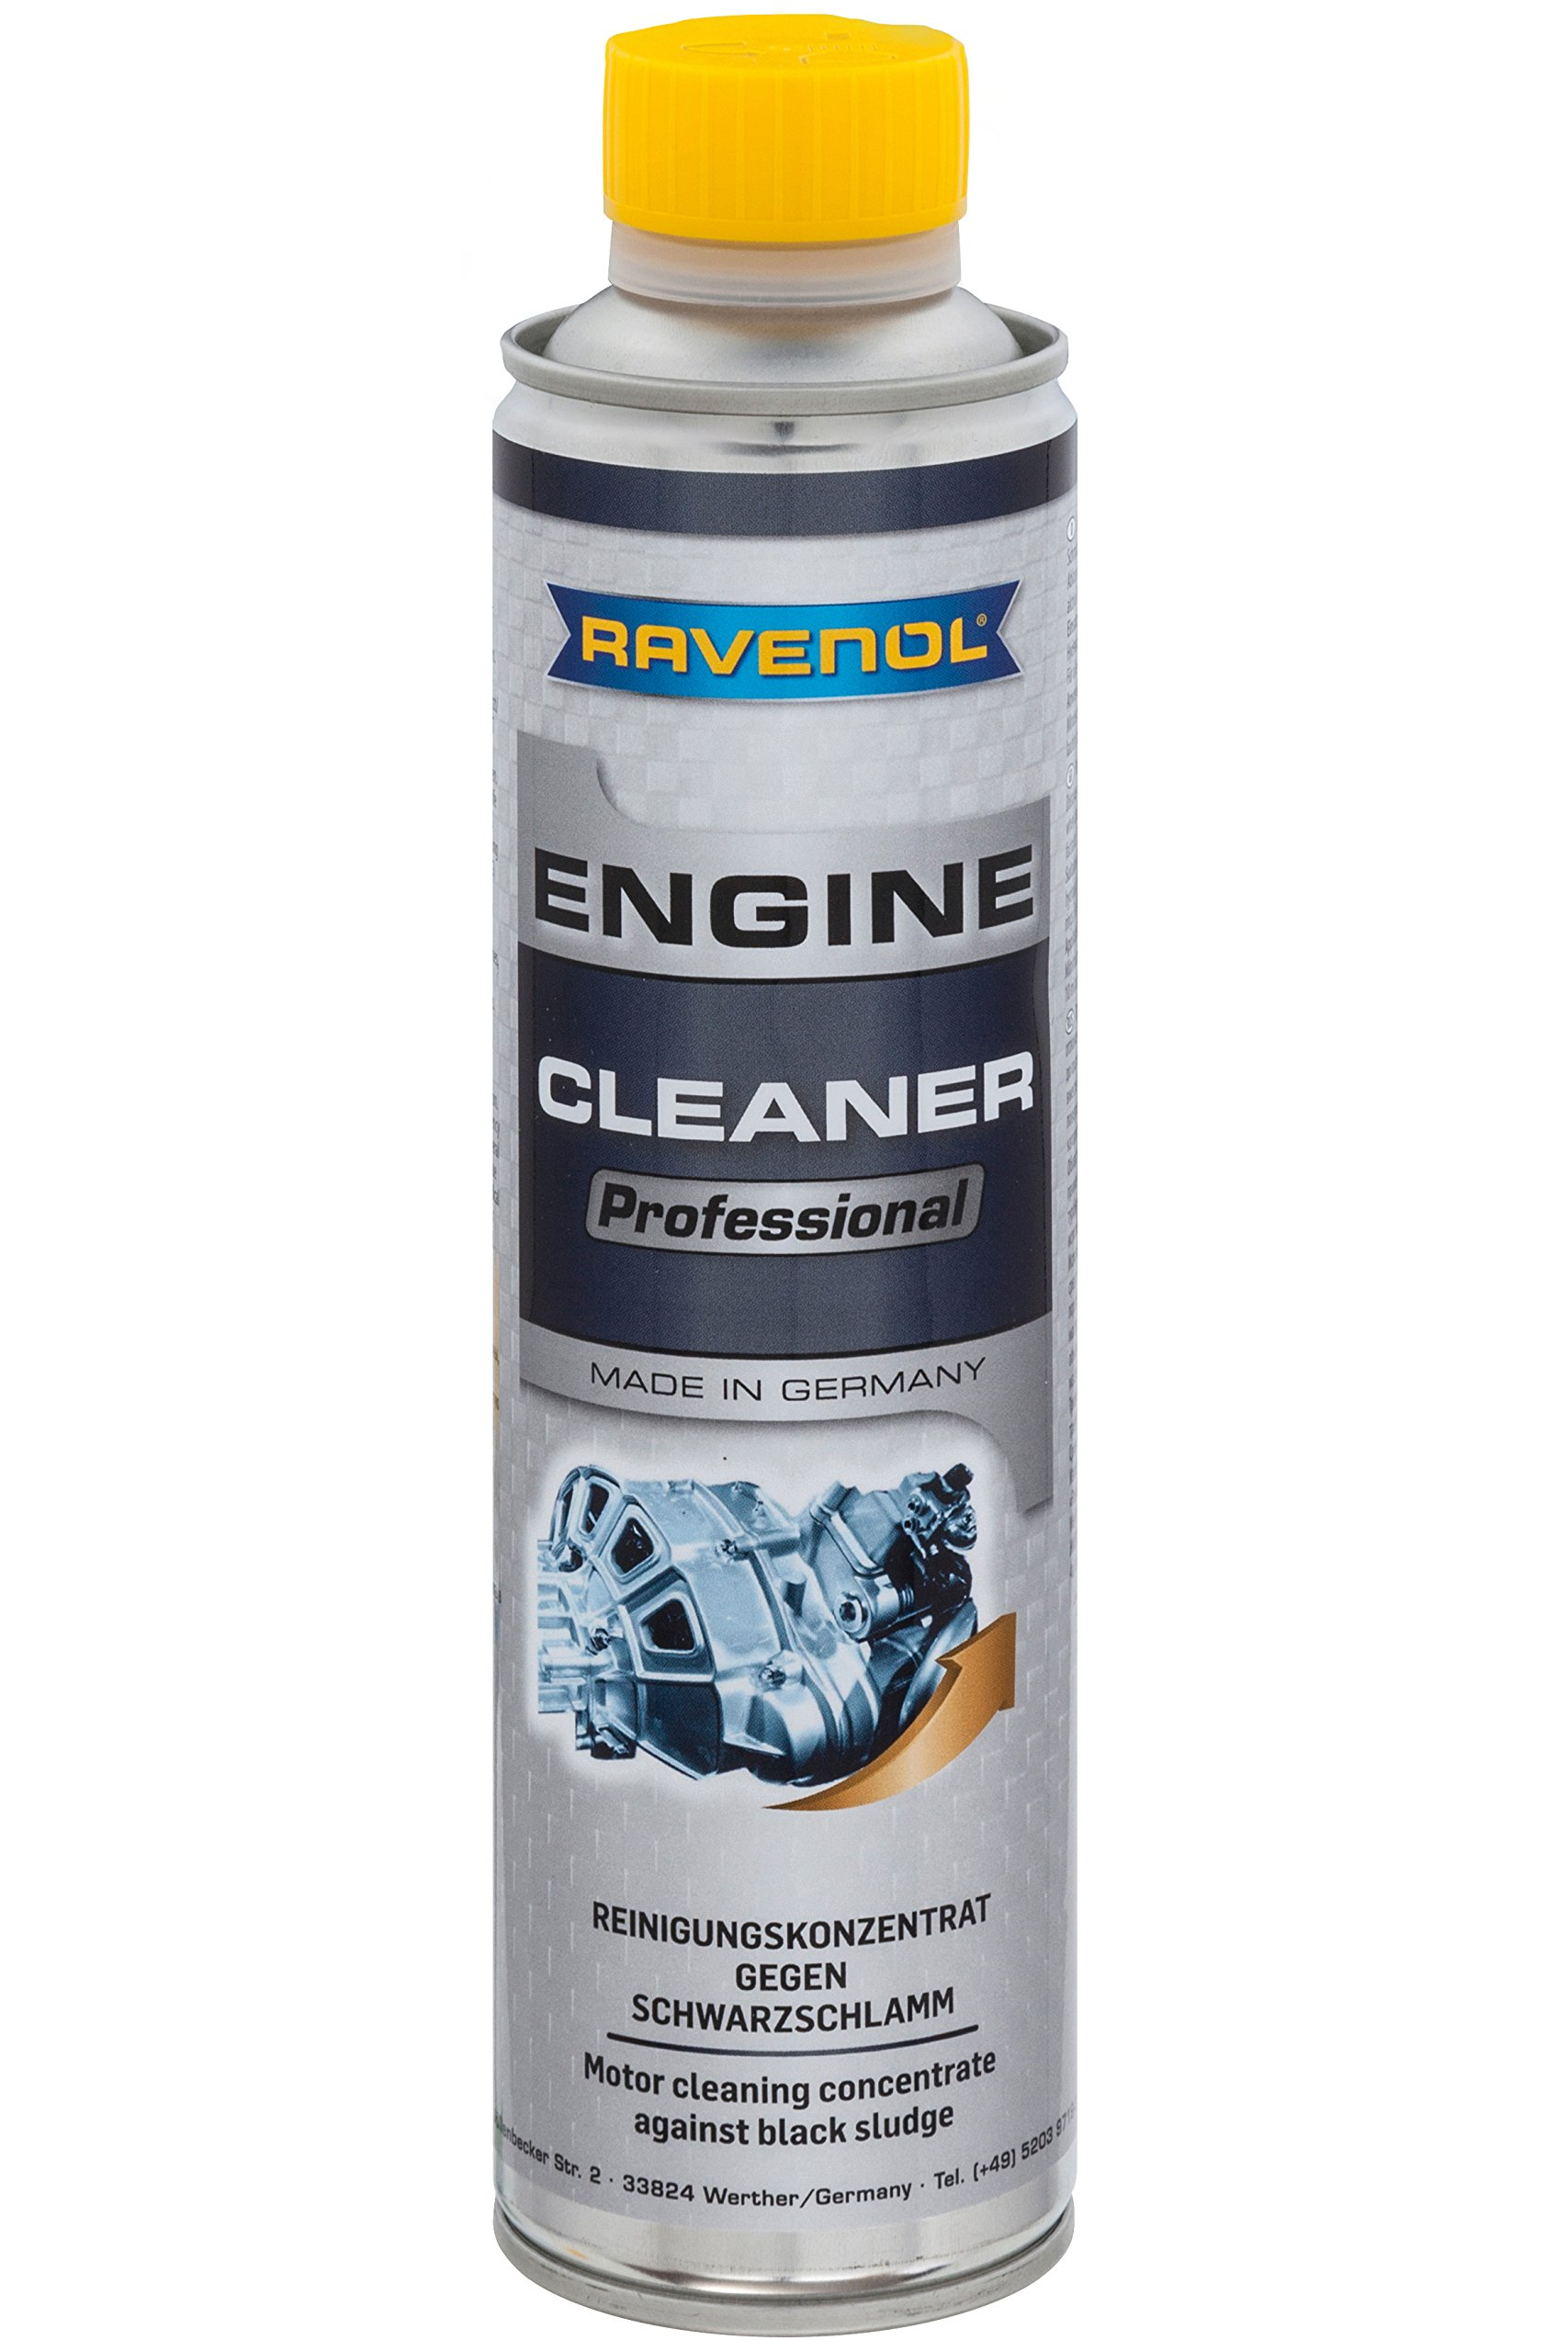 RAVENOL J8A0101-400 Professional Engine Cleaner - Engine Oil System Cleaning and Flush Treatment (400 ml)